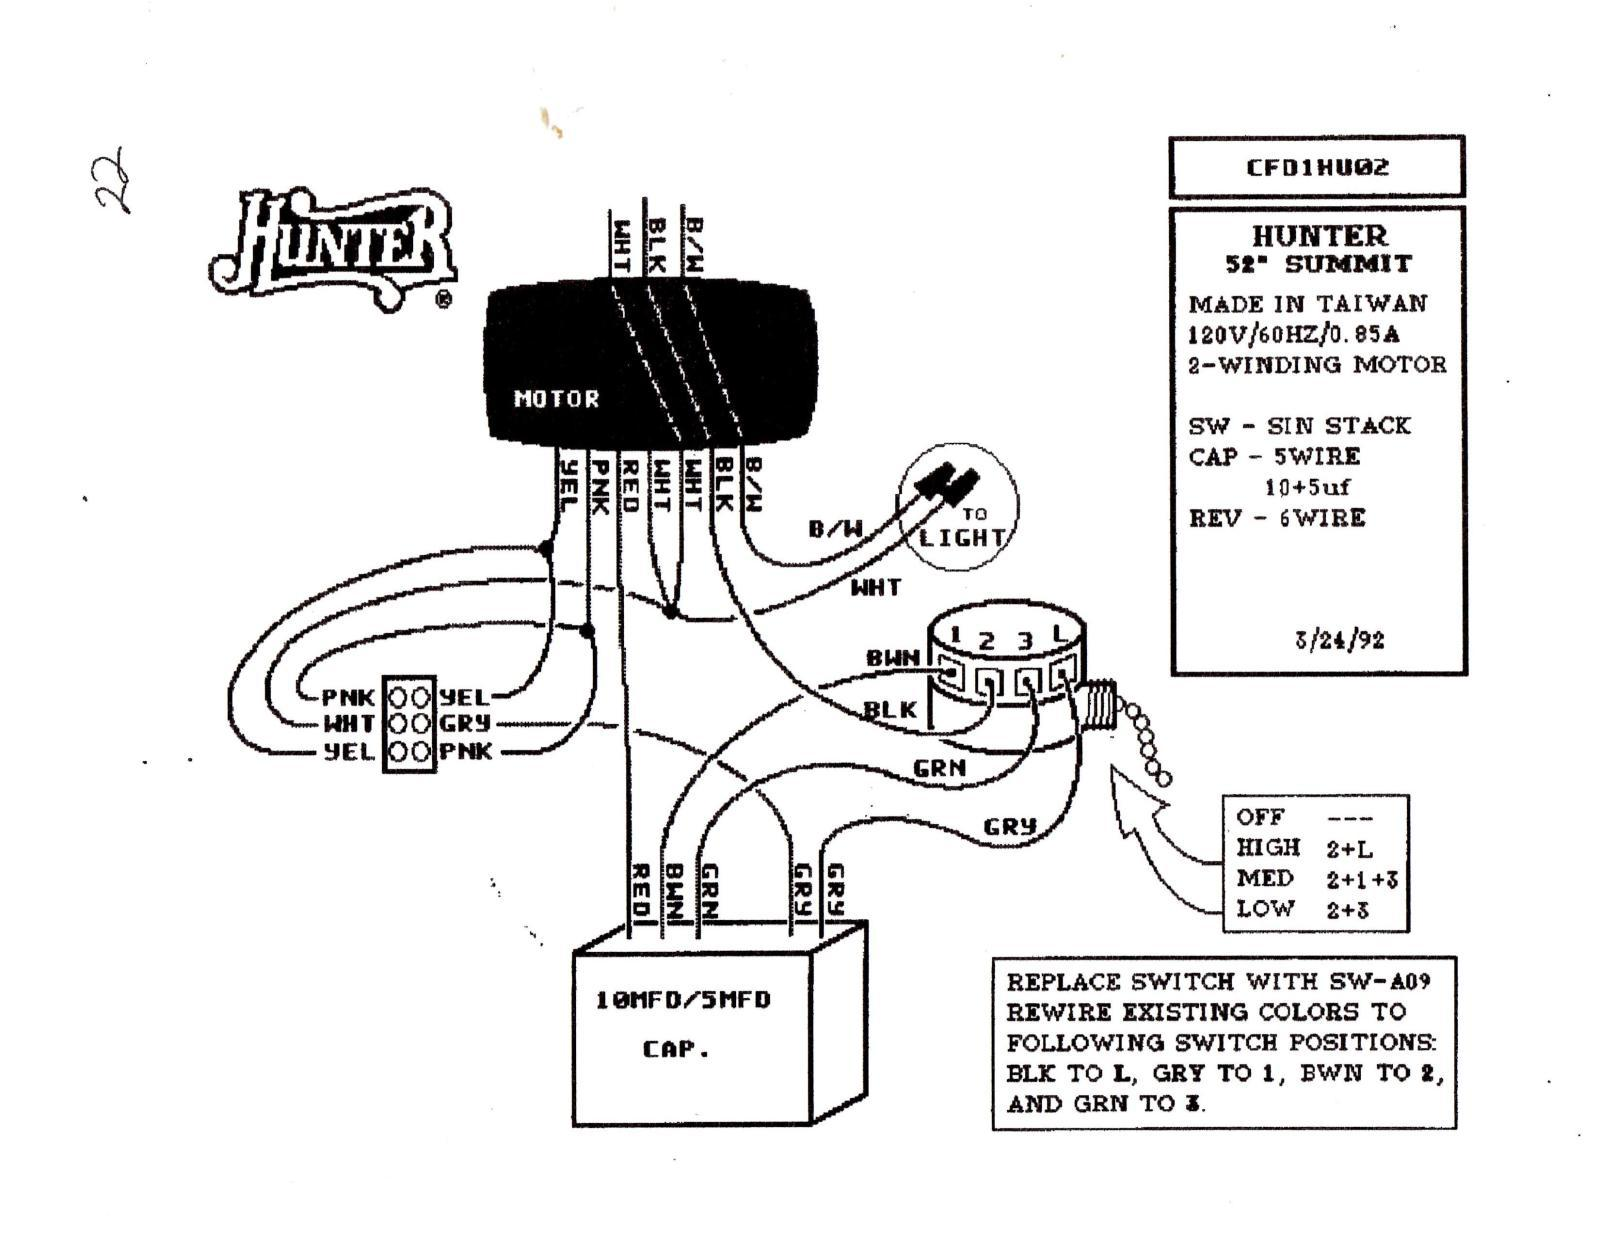 westinghouse ac motor wiring diagram with H Ton Bay Ceiling Fan Wiring on 480 Vac Motor Starter Wiring Diagram as well Wiring Diagram For Lathe additionally 240 Volt Single Phase Motor Wiring Diagram additionally 8 Wire Electric Motor Wiring Diagram furthermore How Does An Evaporative Cooler Sw  Cooler Work.